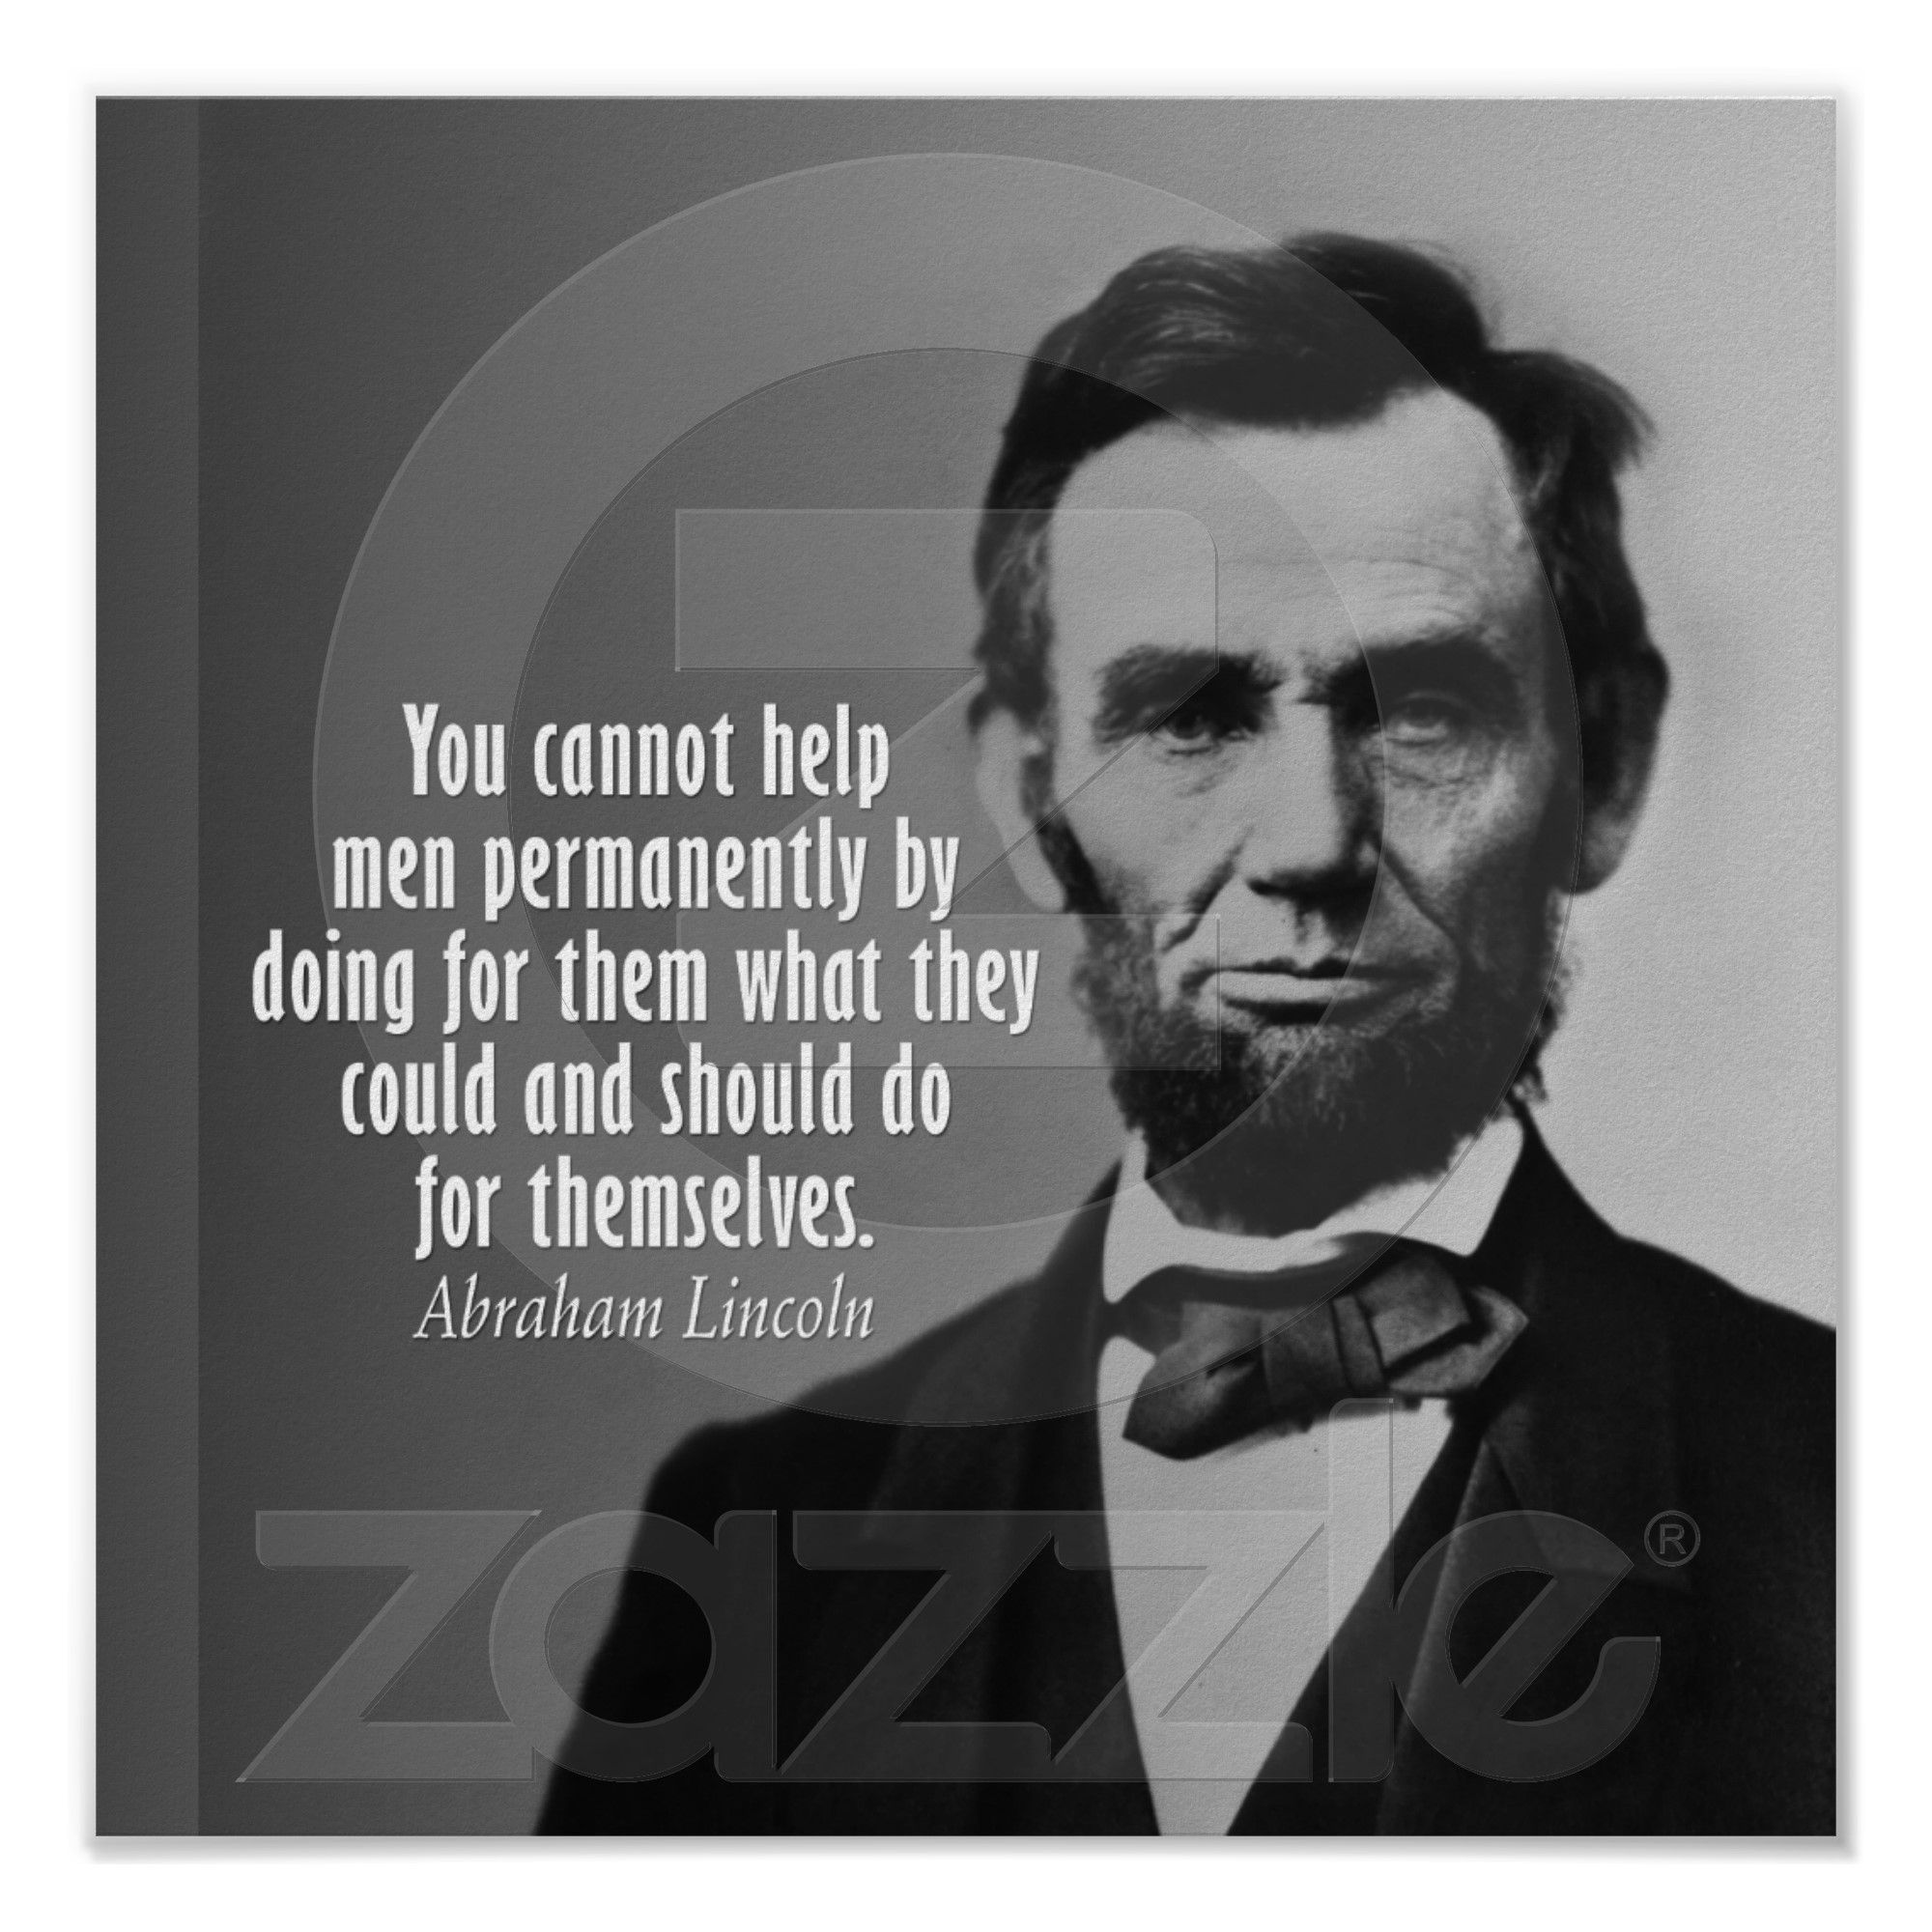 Abraham Lincoln Quote Posters from Zazzle